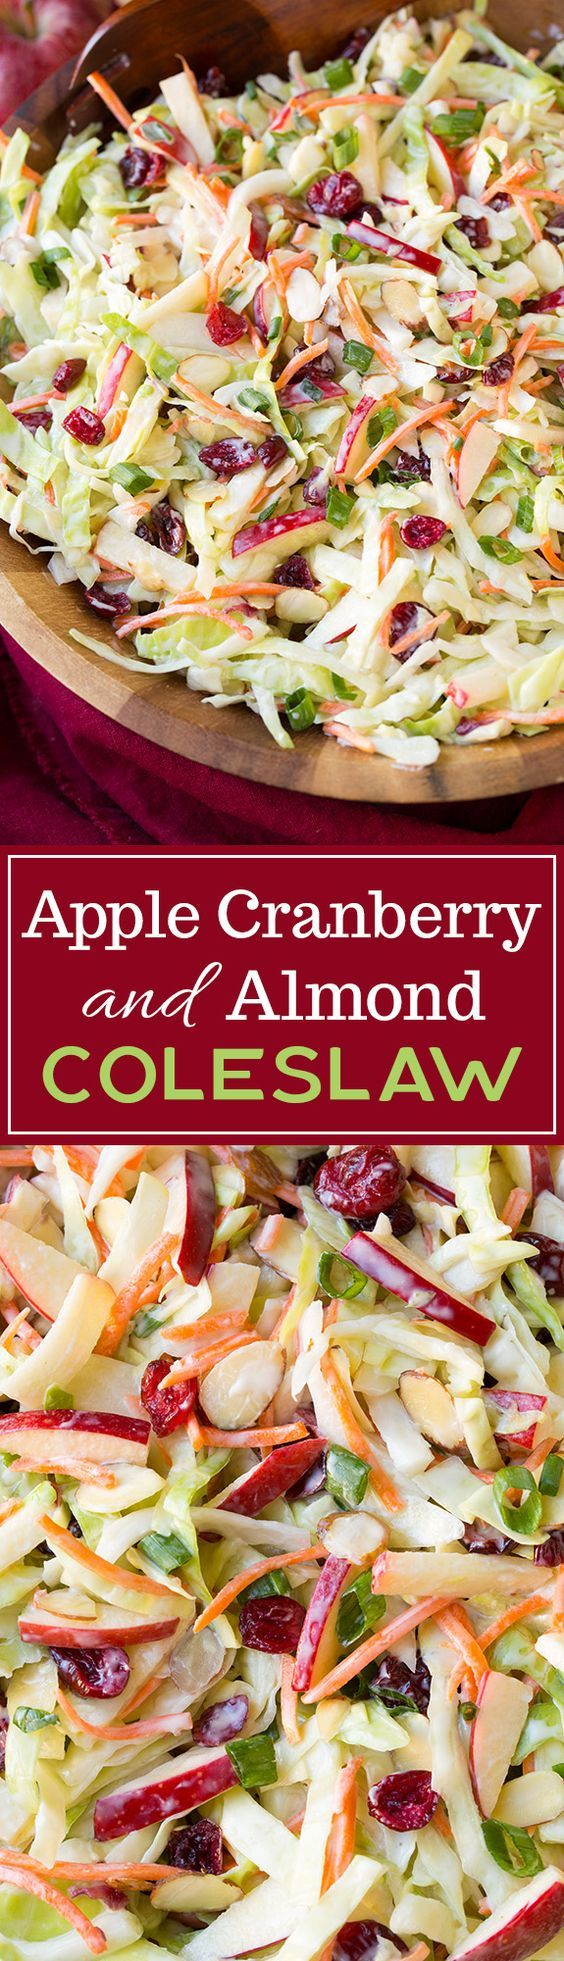 Apple Cranberry Almond Coleslaw - uses mostly Greek yogurt instead of mayo! Easy, healthy, delicious!